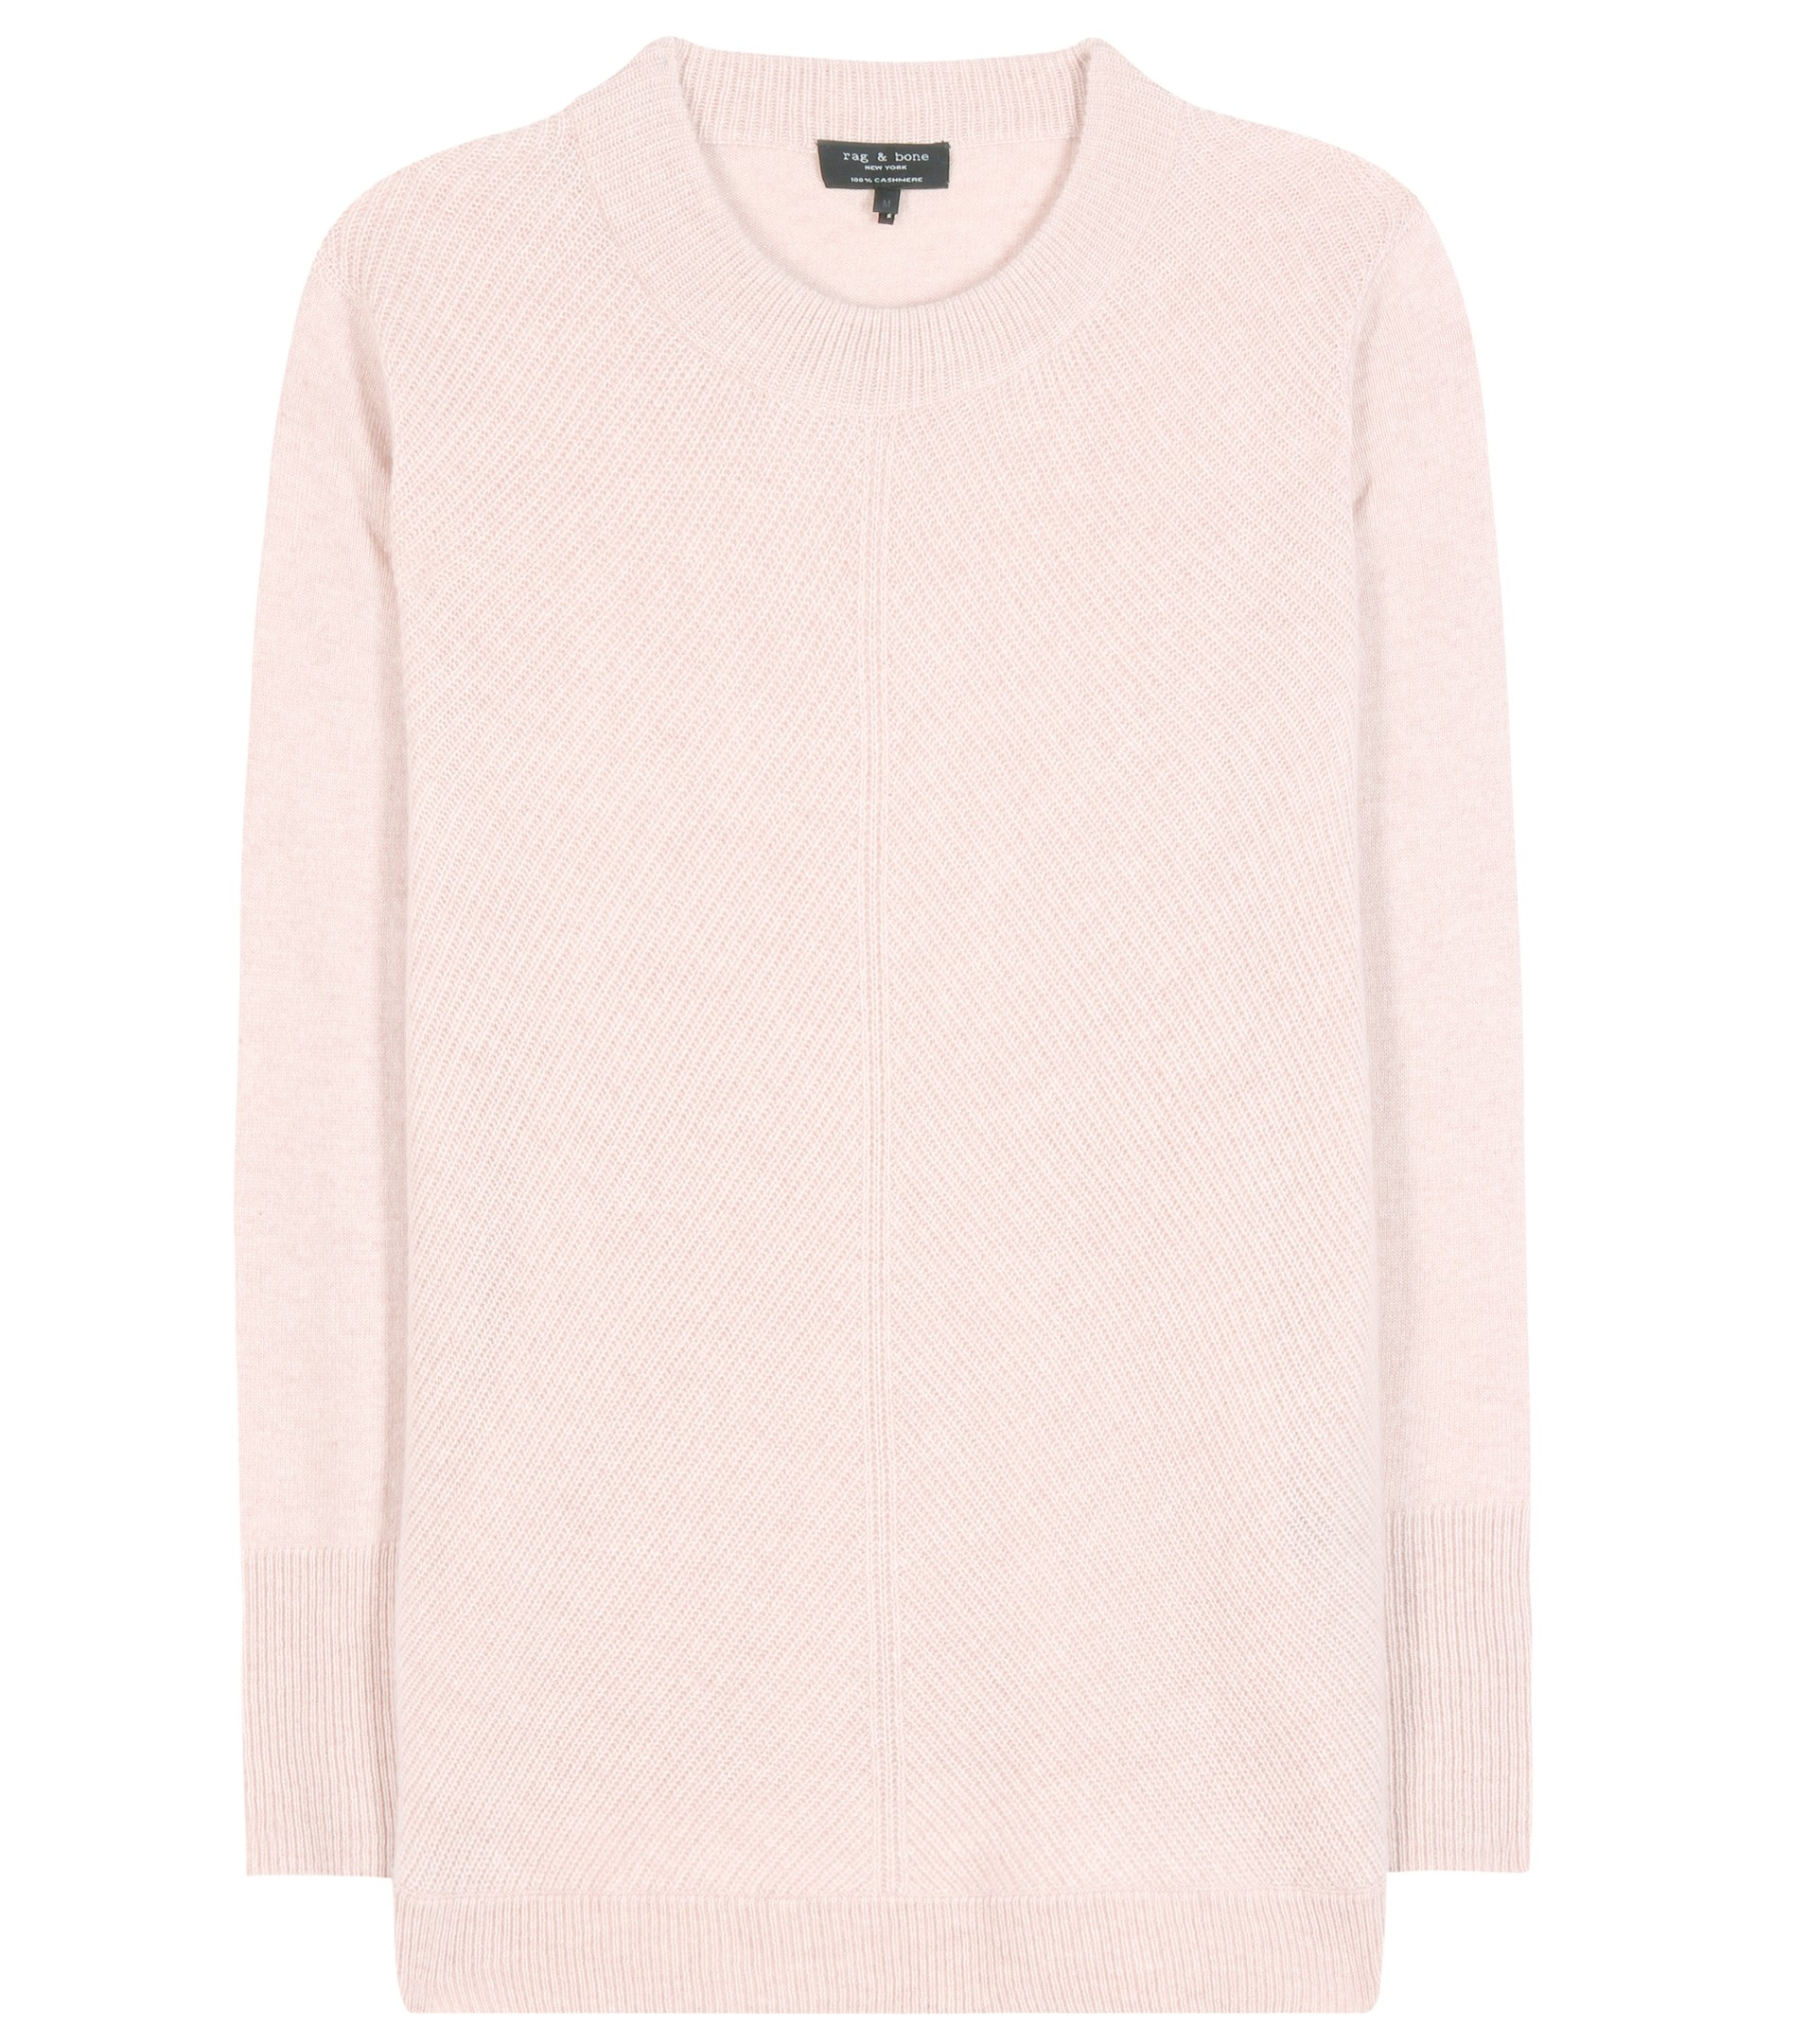 Rag & bone Alexis Cashmere Sweater in Pink | Lyst